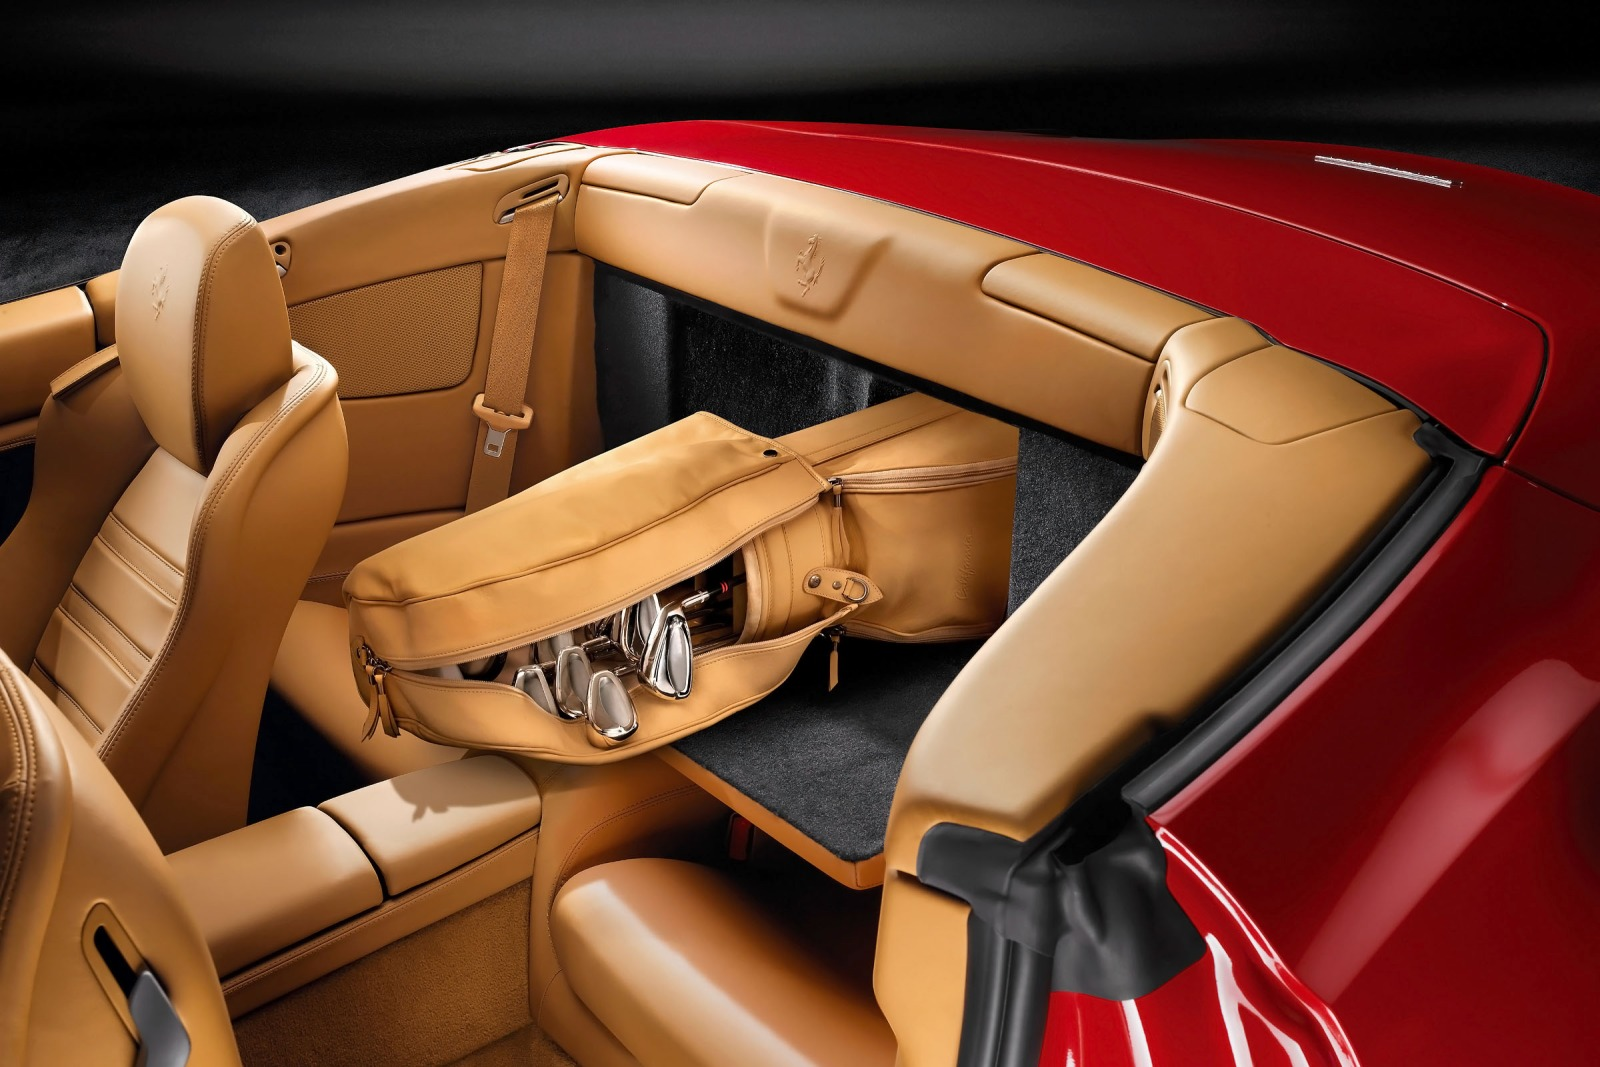 2012 Ferrari California C interior #9